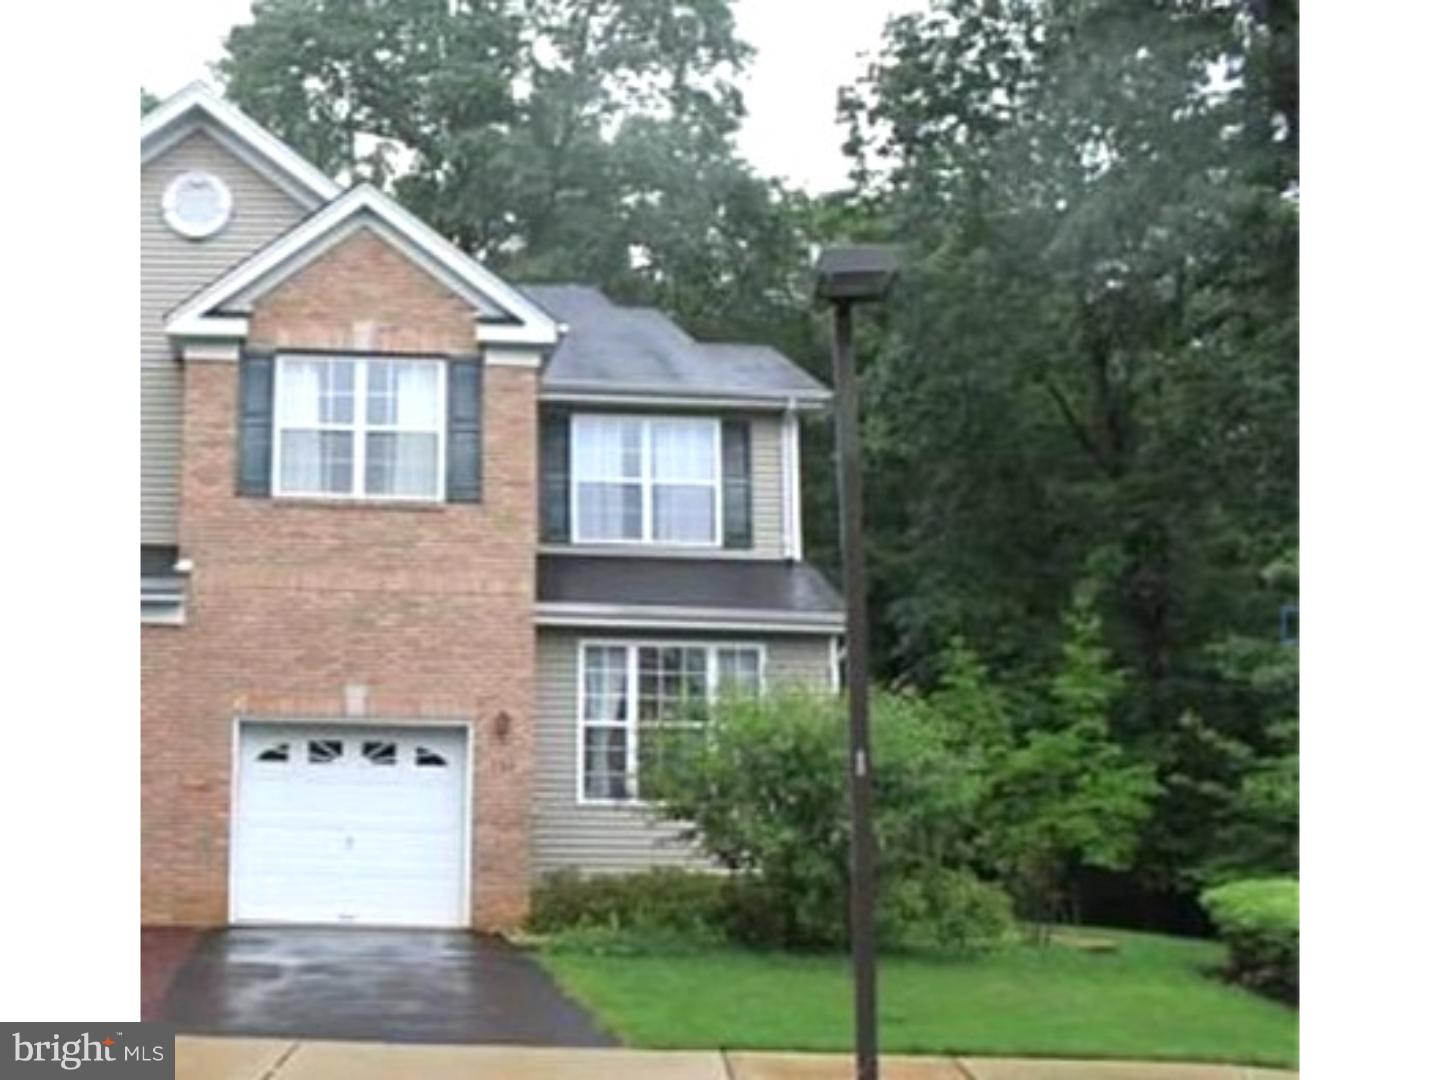 Property for Rent at Princeton, New Jersey 08540 United States